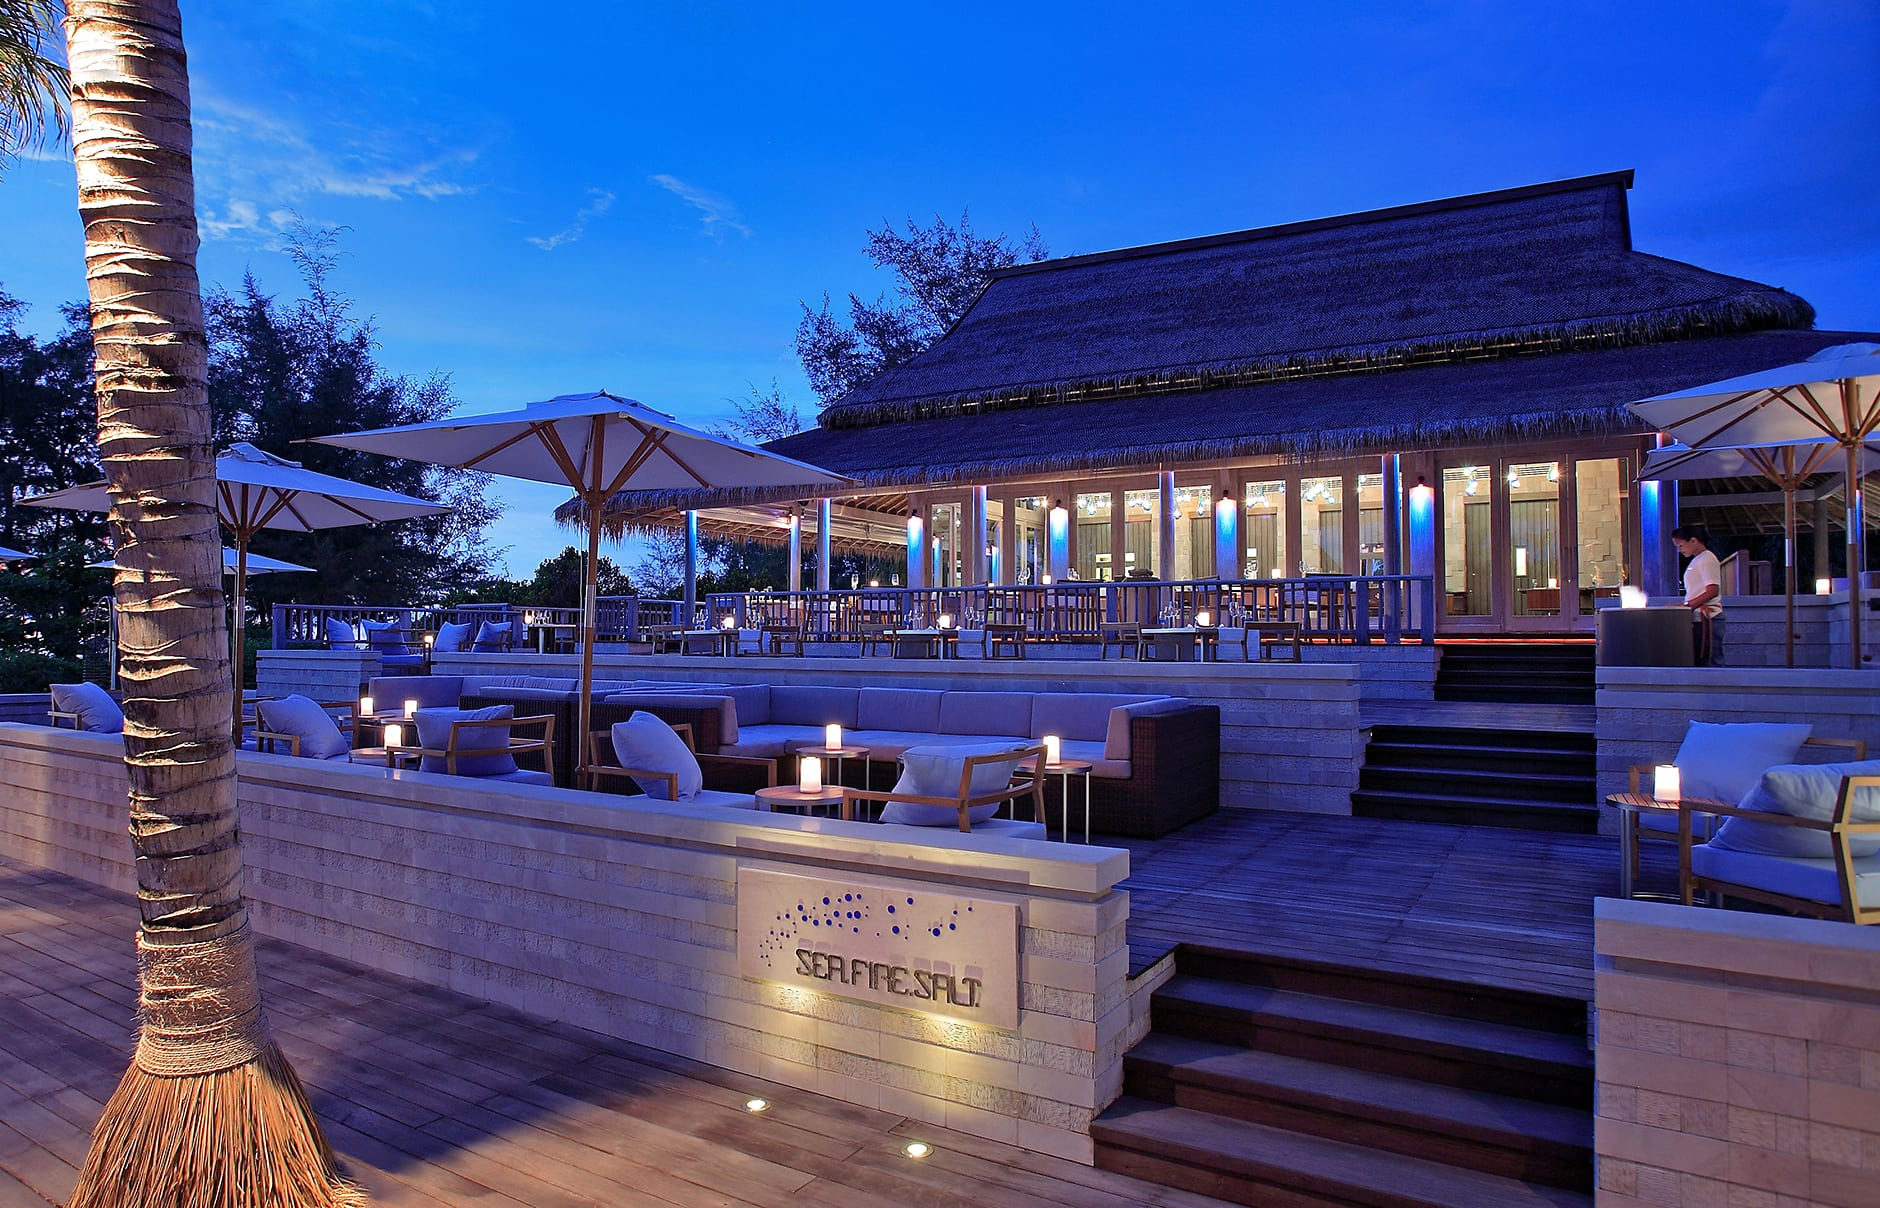 Sea.Fire.Salt. Anantara Phuket Villas, Thailand. © Anantara Hotels, Resorts & Spa